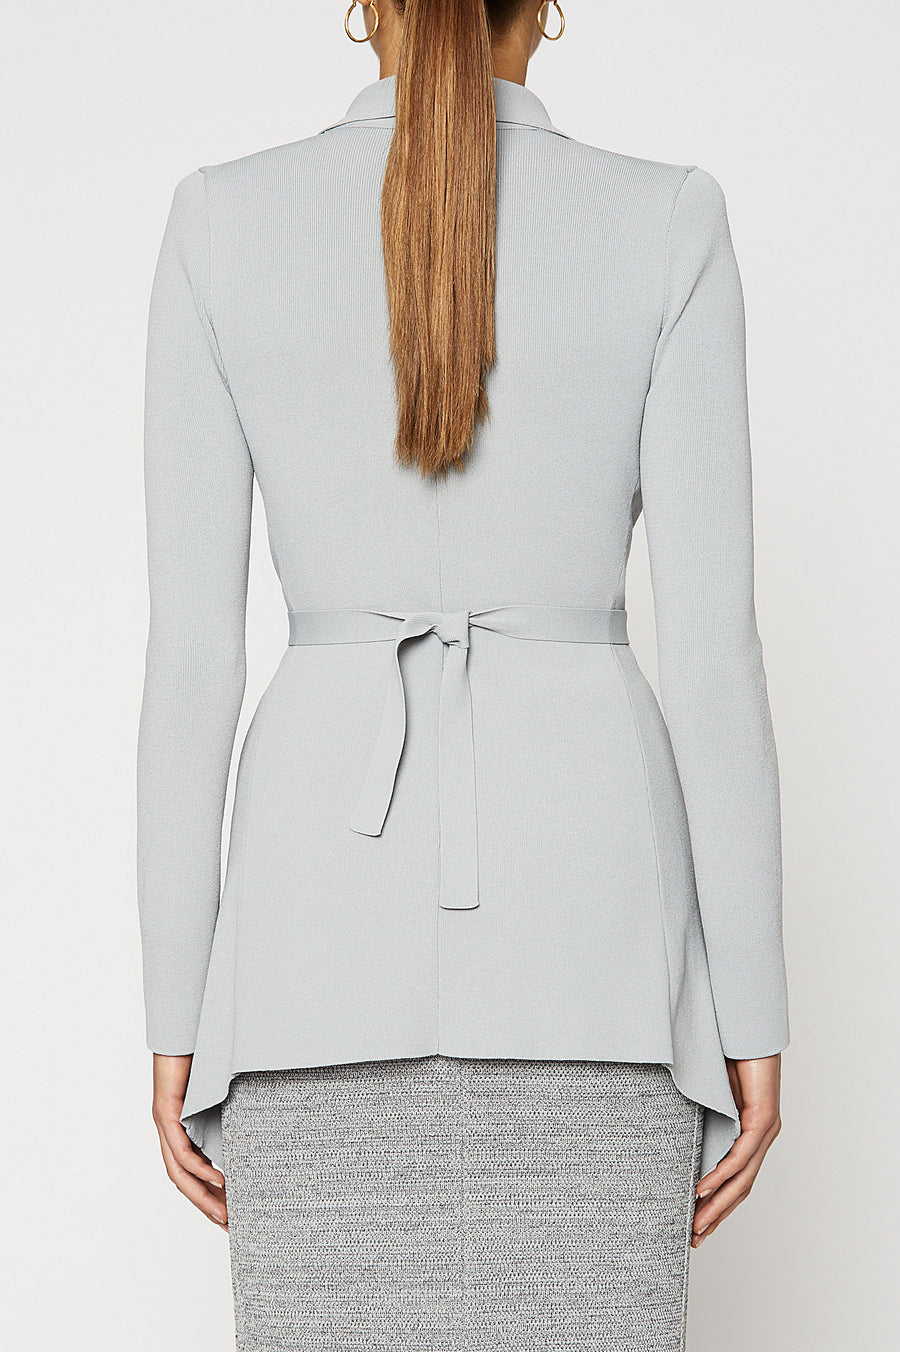 Crepe Knit Drape Front Jacket, tailored jacket, pointed collar, fitted bodice, shoulder pads, flap pocket detail, Color Smoke